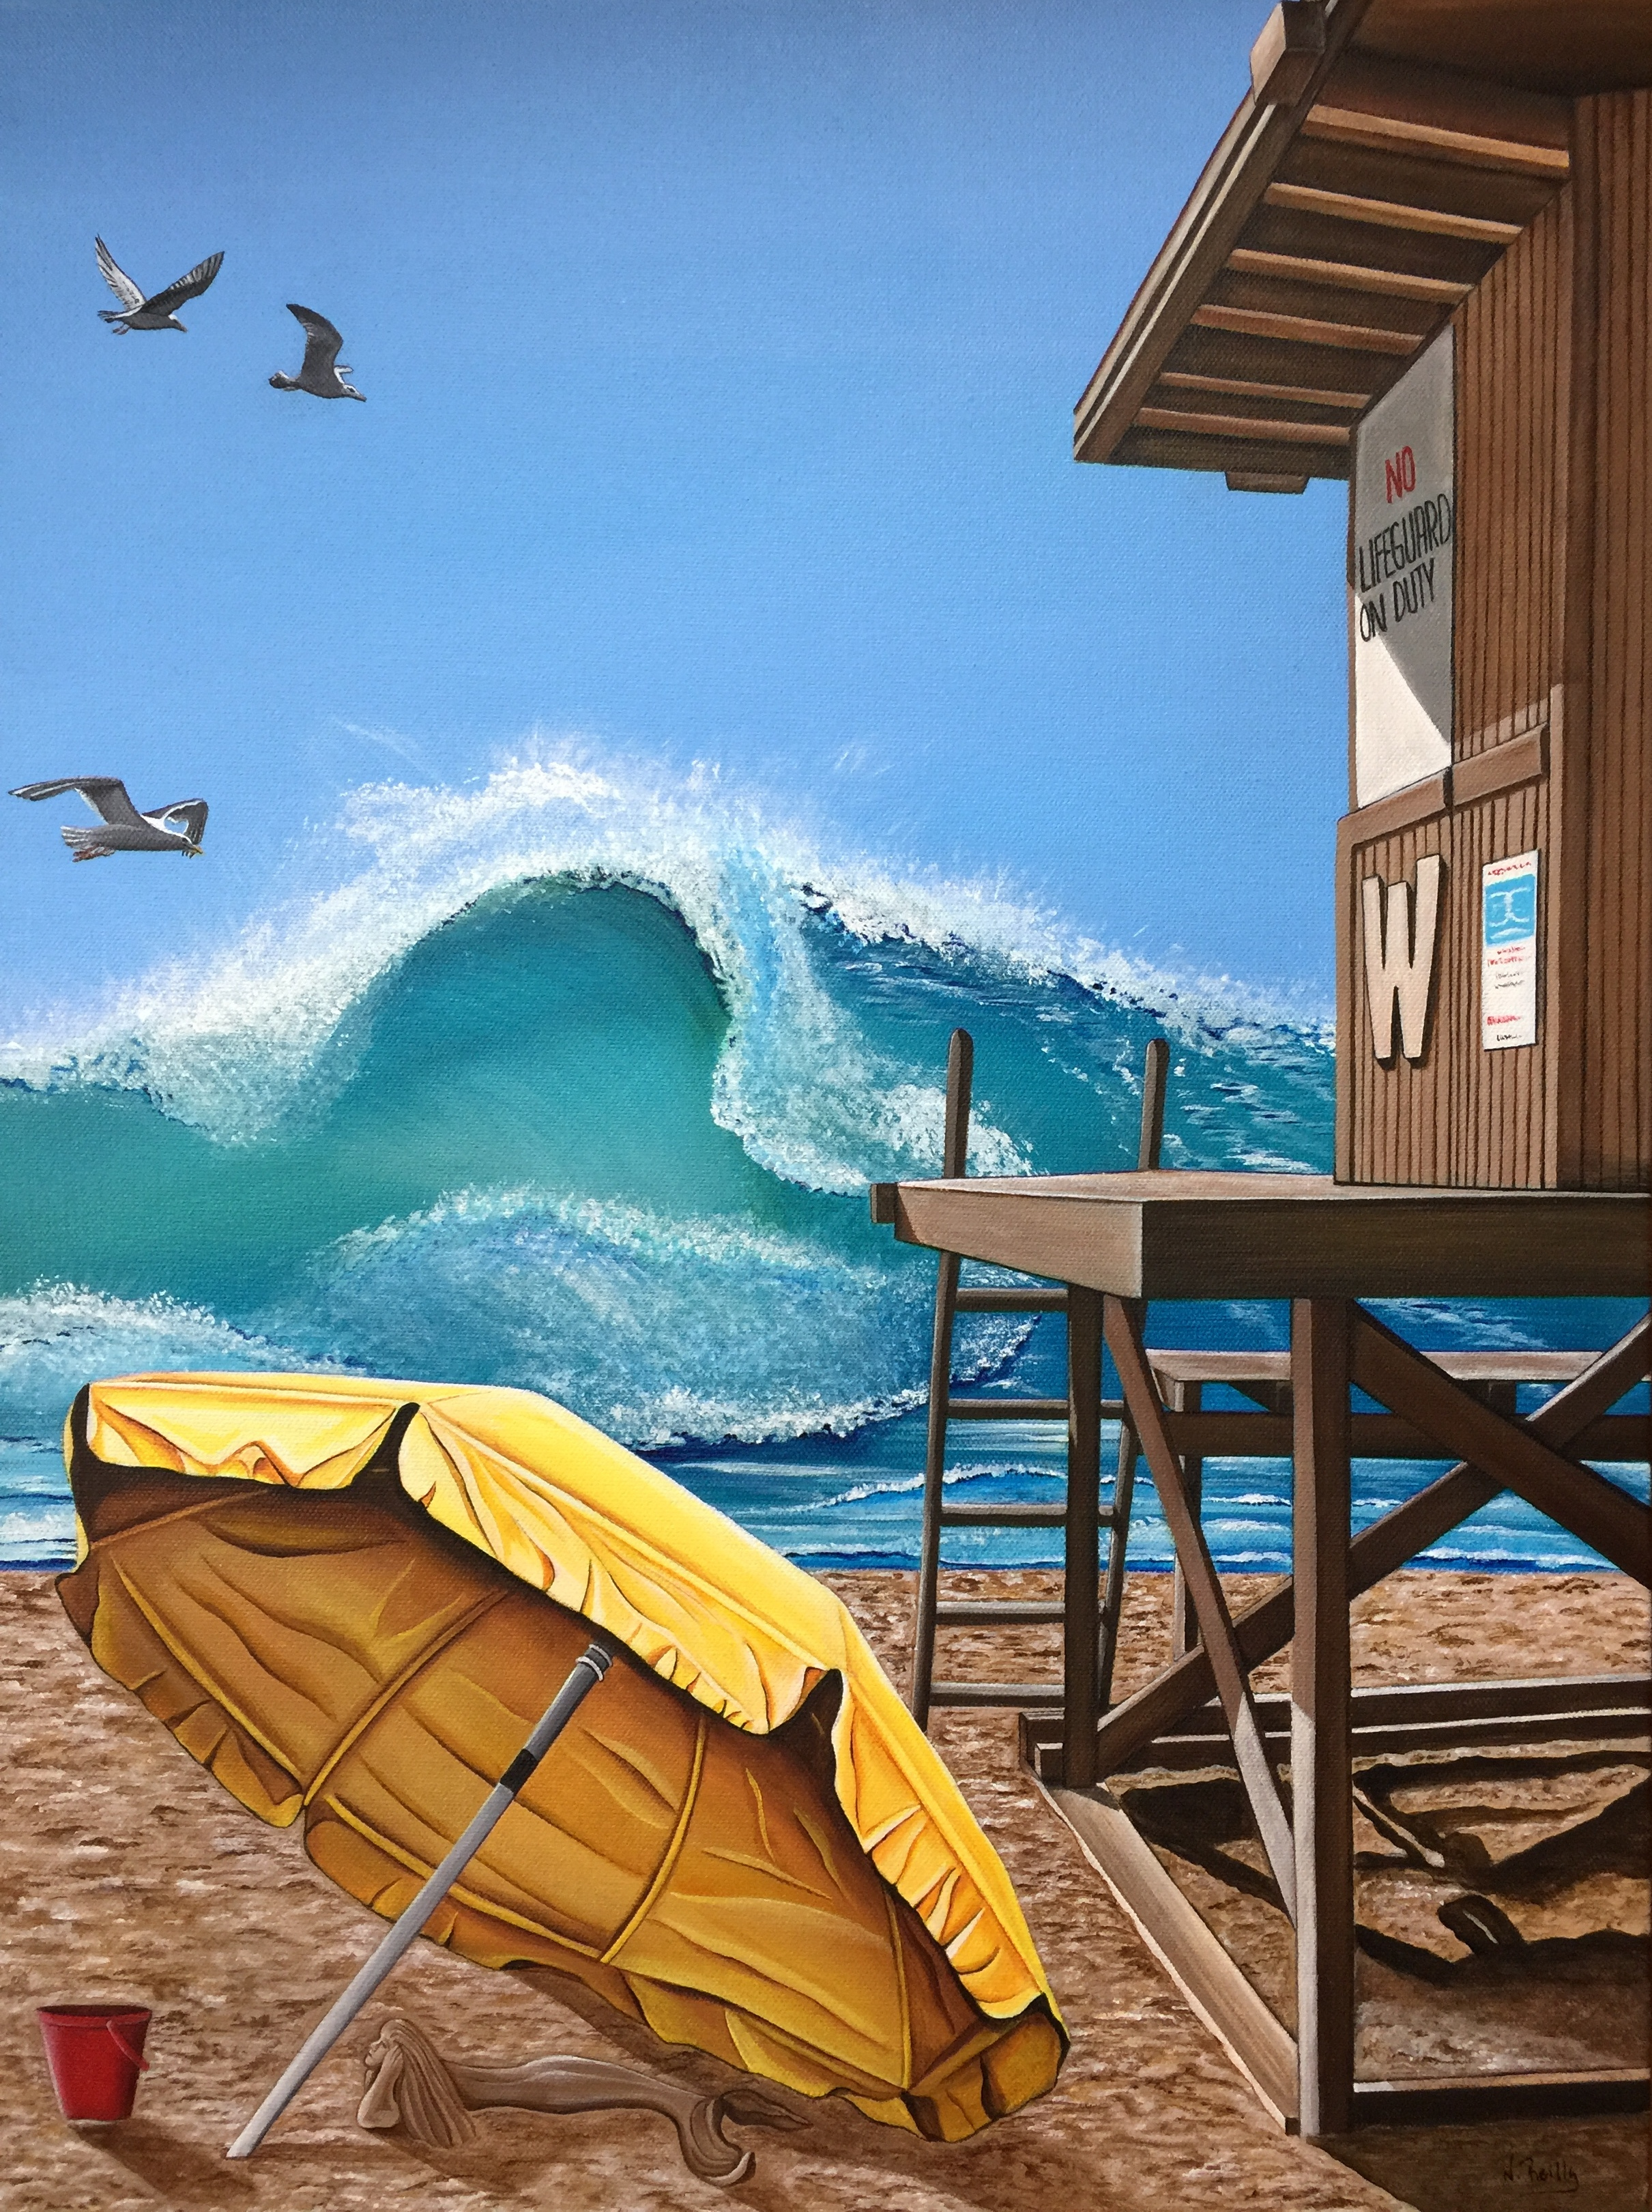 California Dreamin at the Wedge artwork by Natalie Reilly - art listed for sale on Artplode